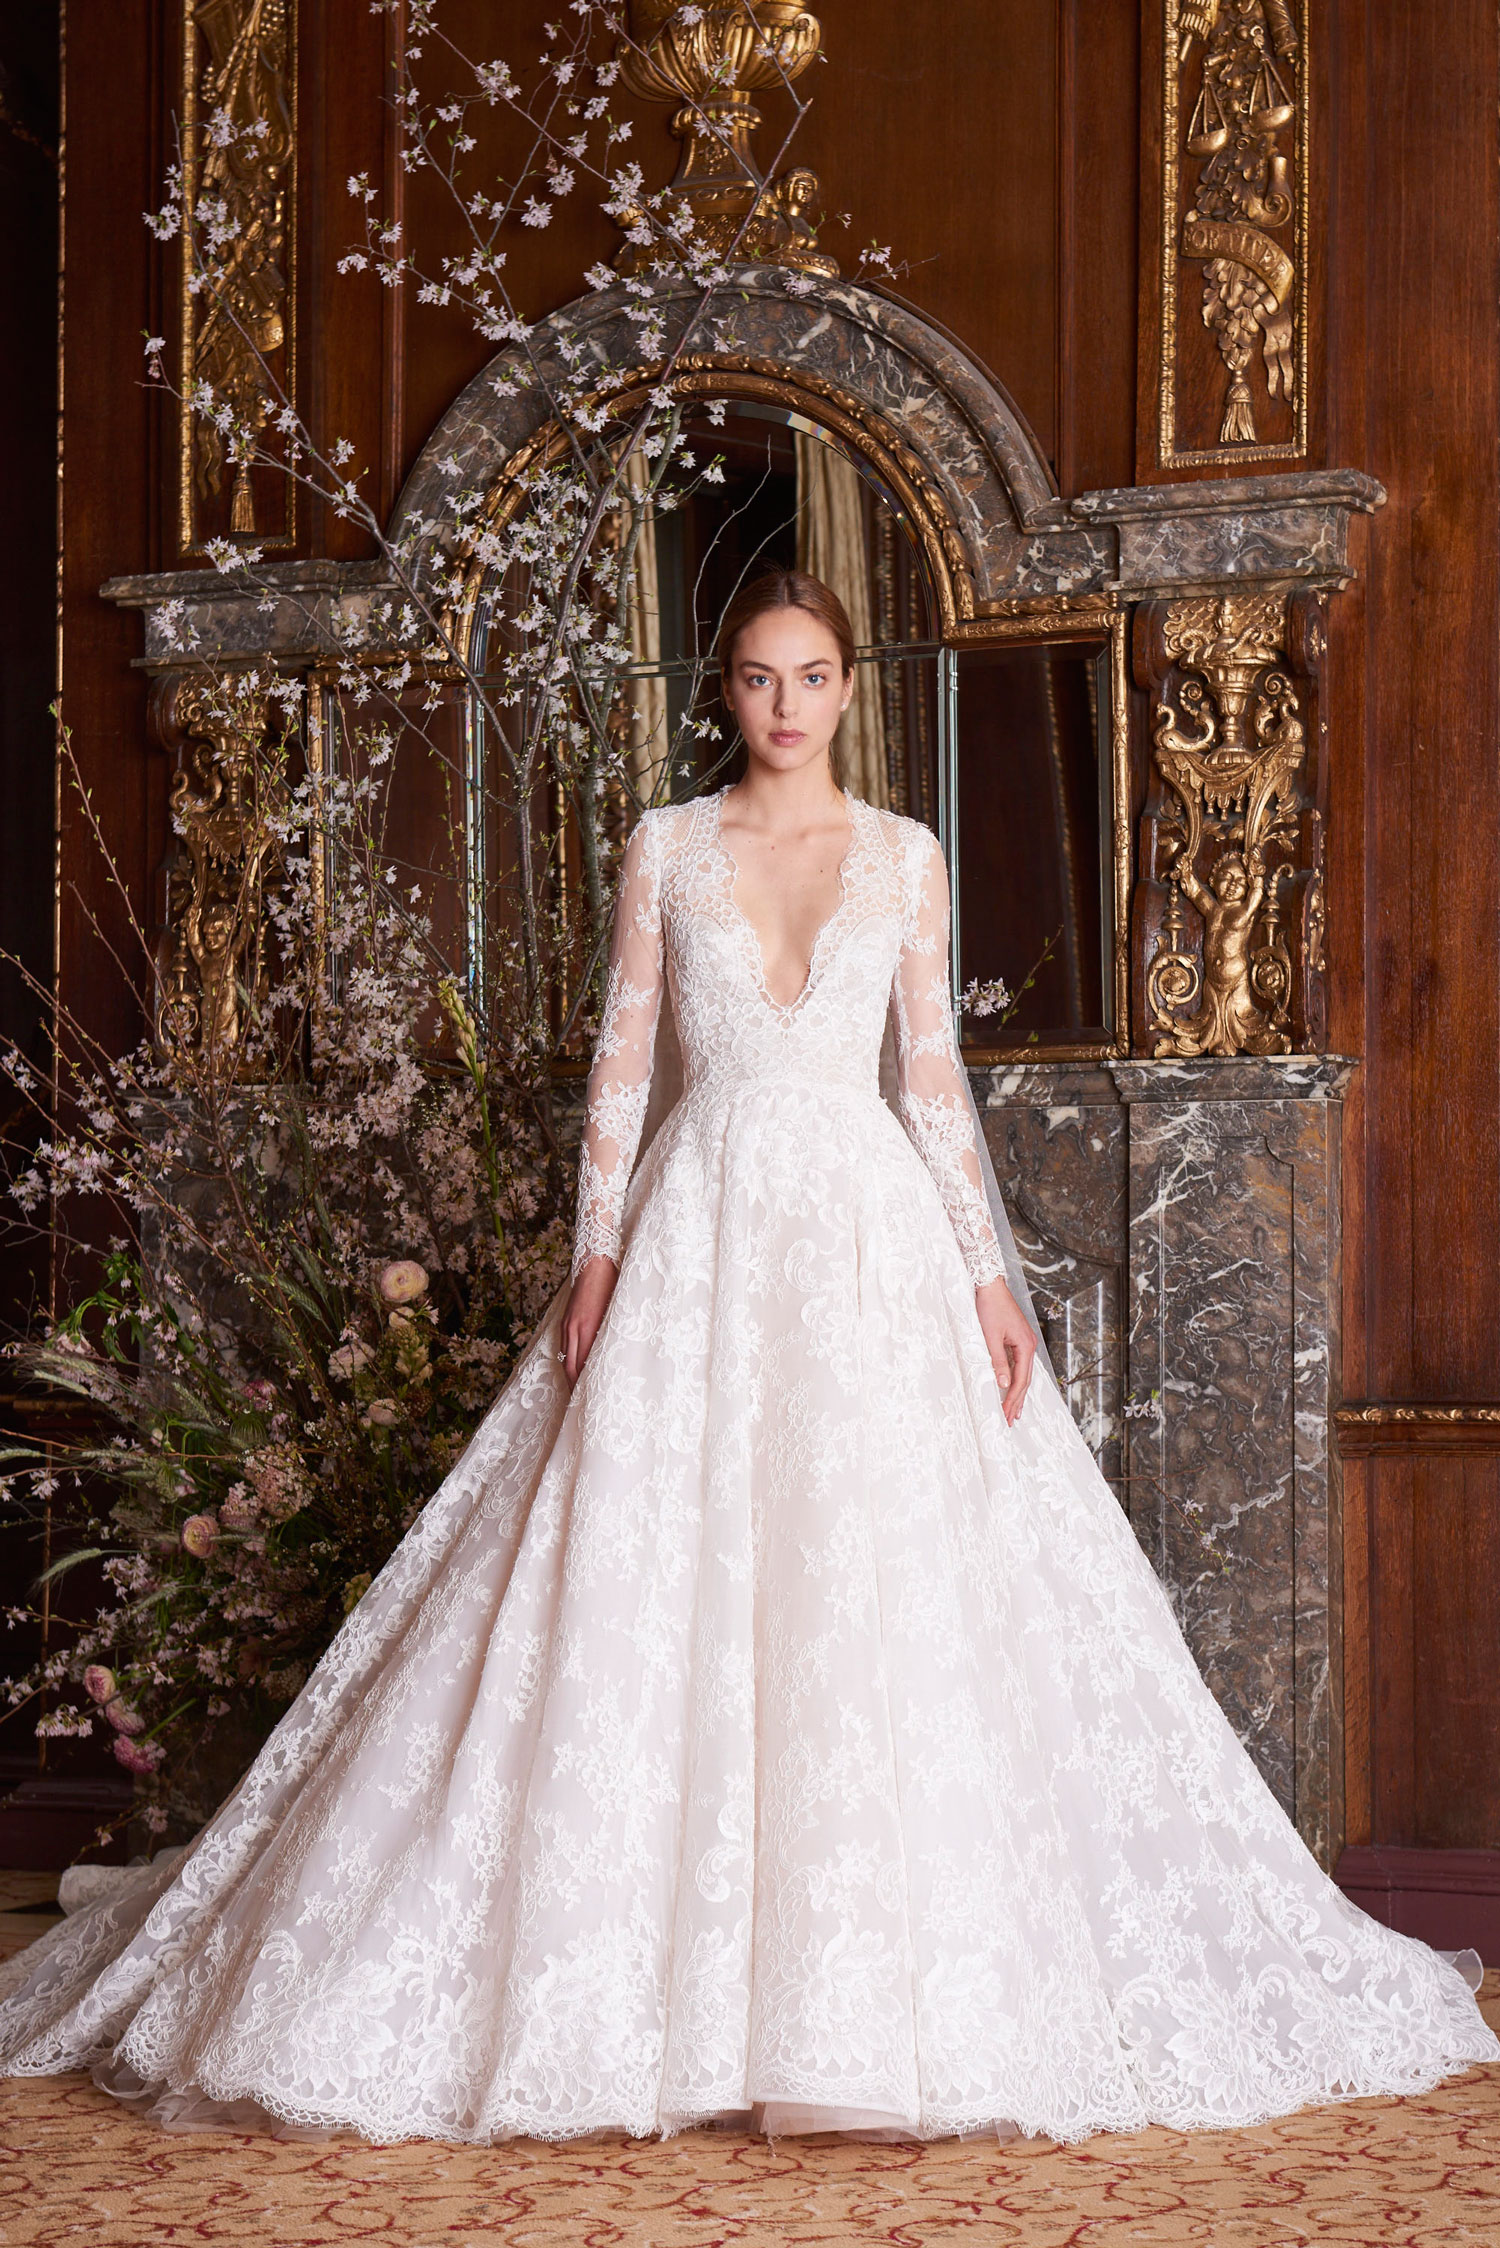 Monique Lhuillier Majesty ball gown long sleeve v neck royal wedding inspired dresses